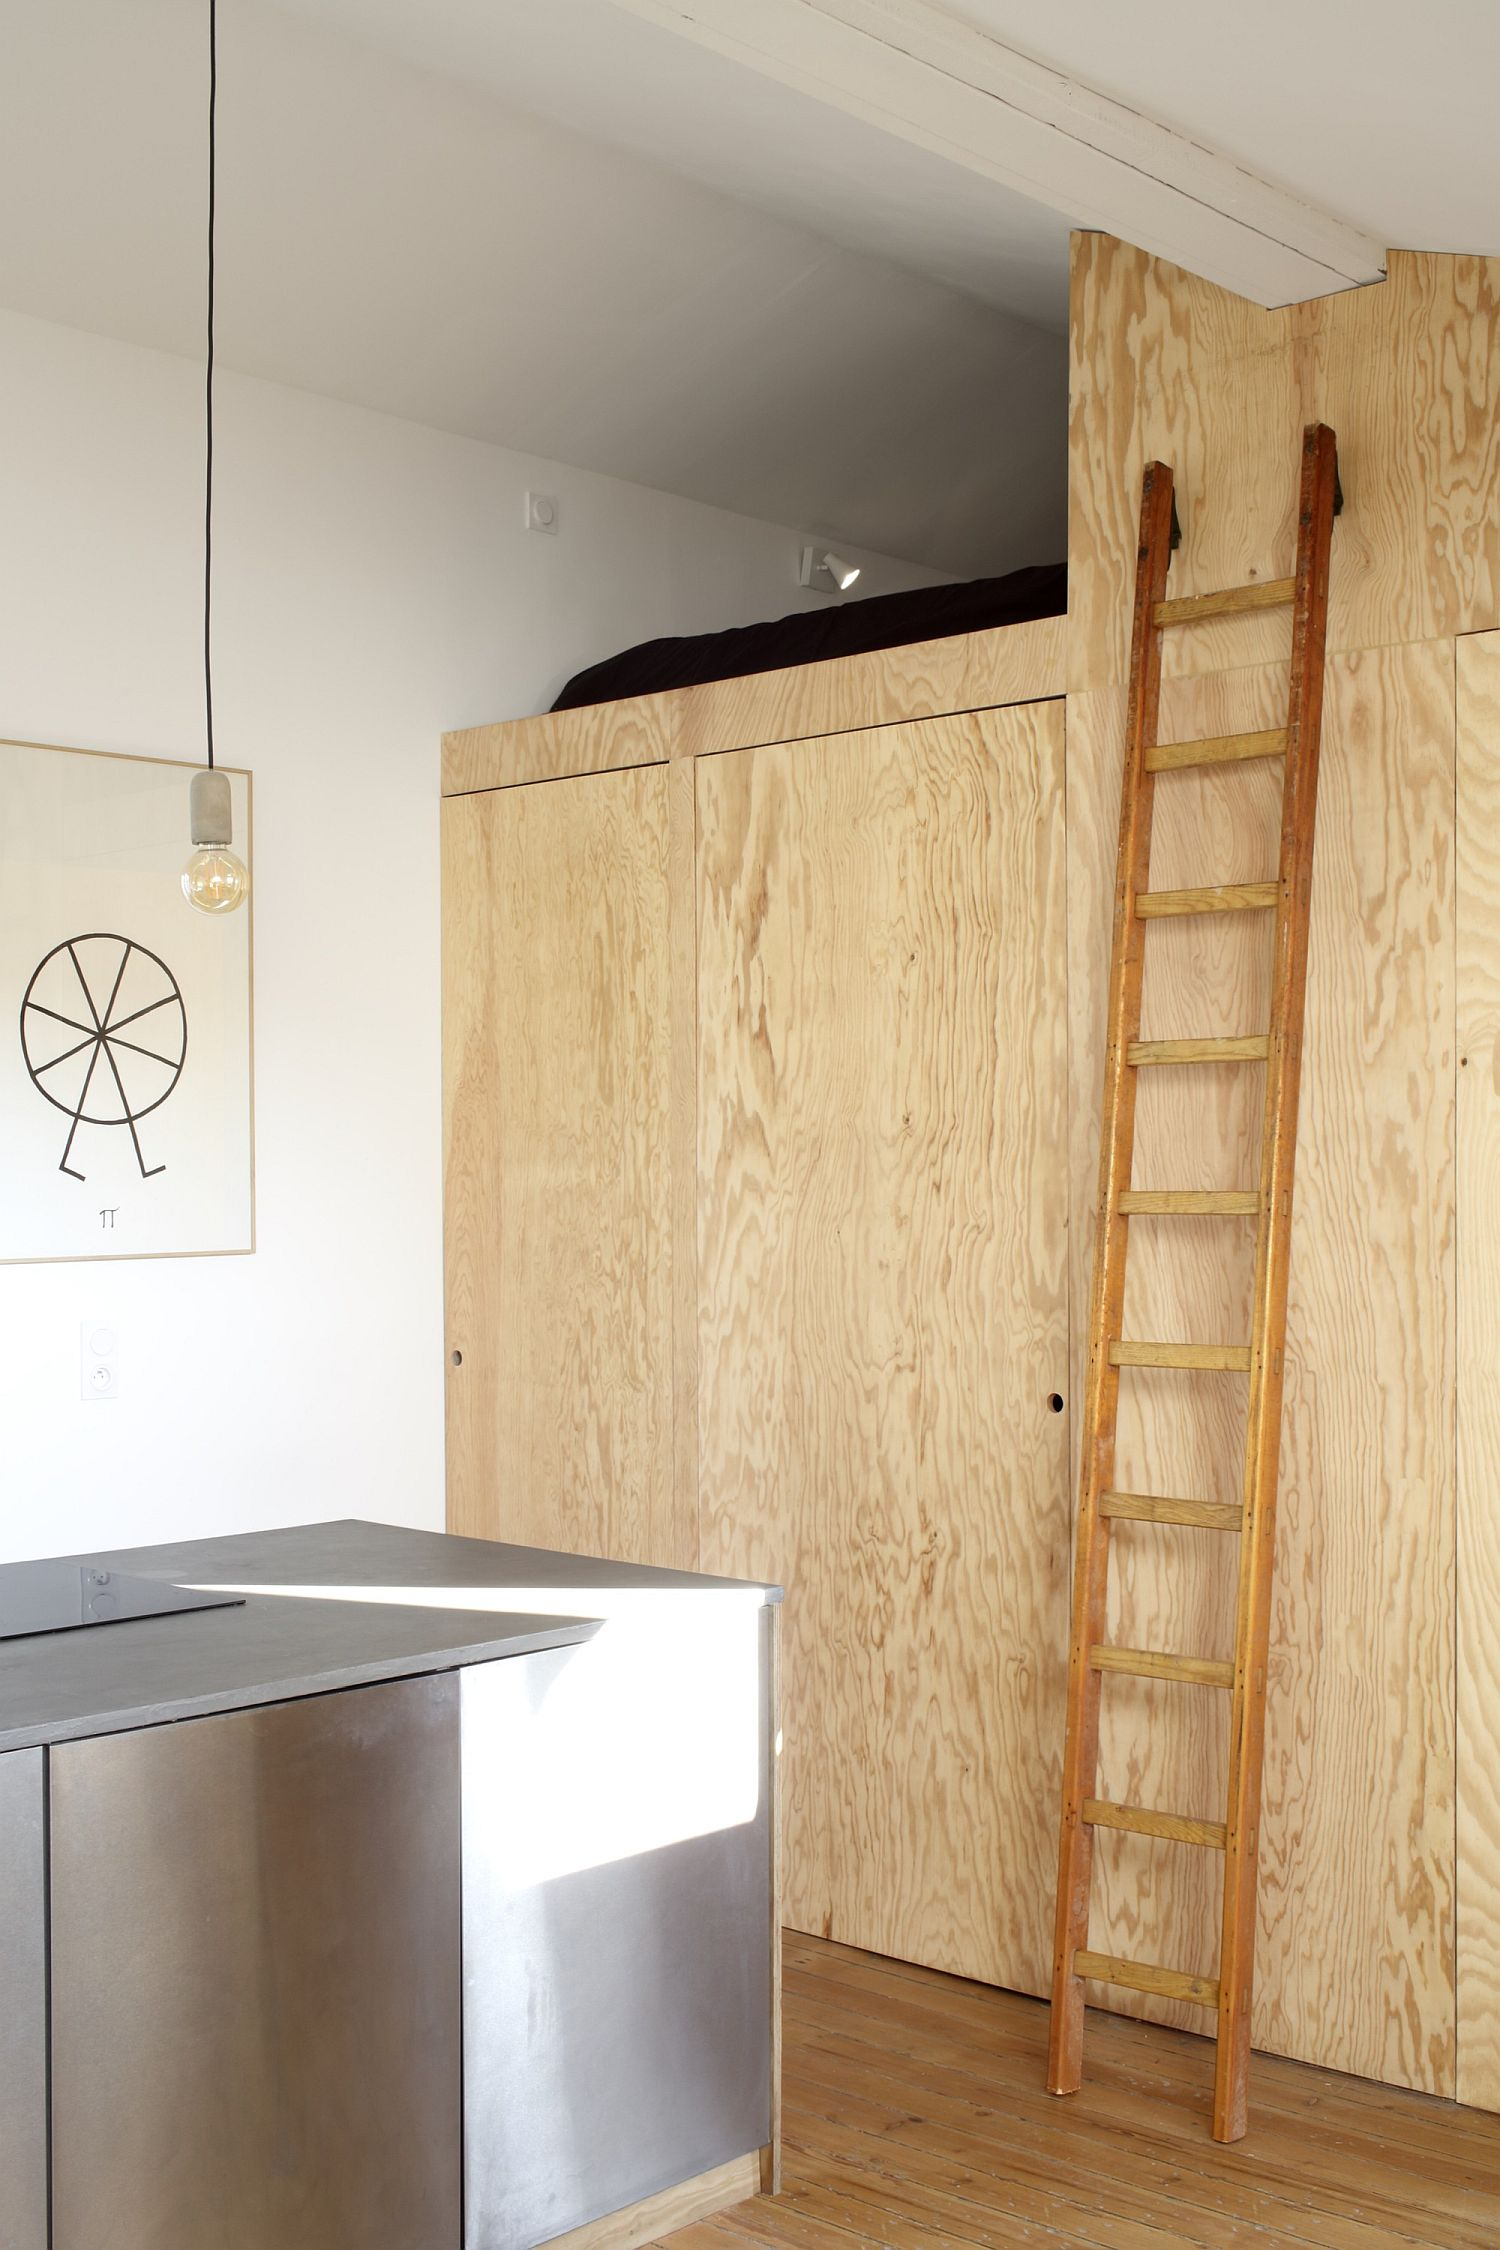 Loft bed level offers additional sleeping space above the bathroom